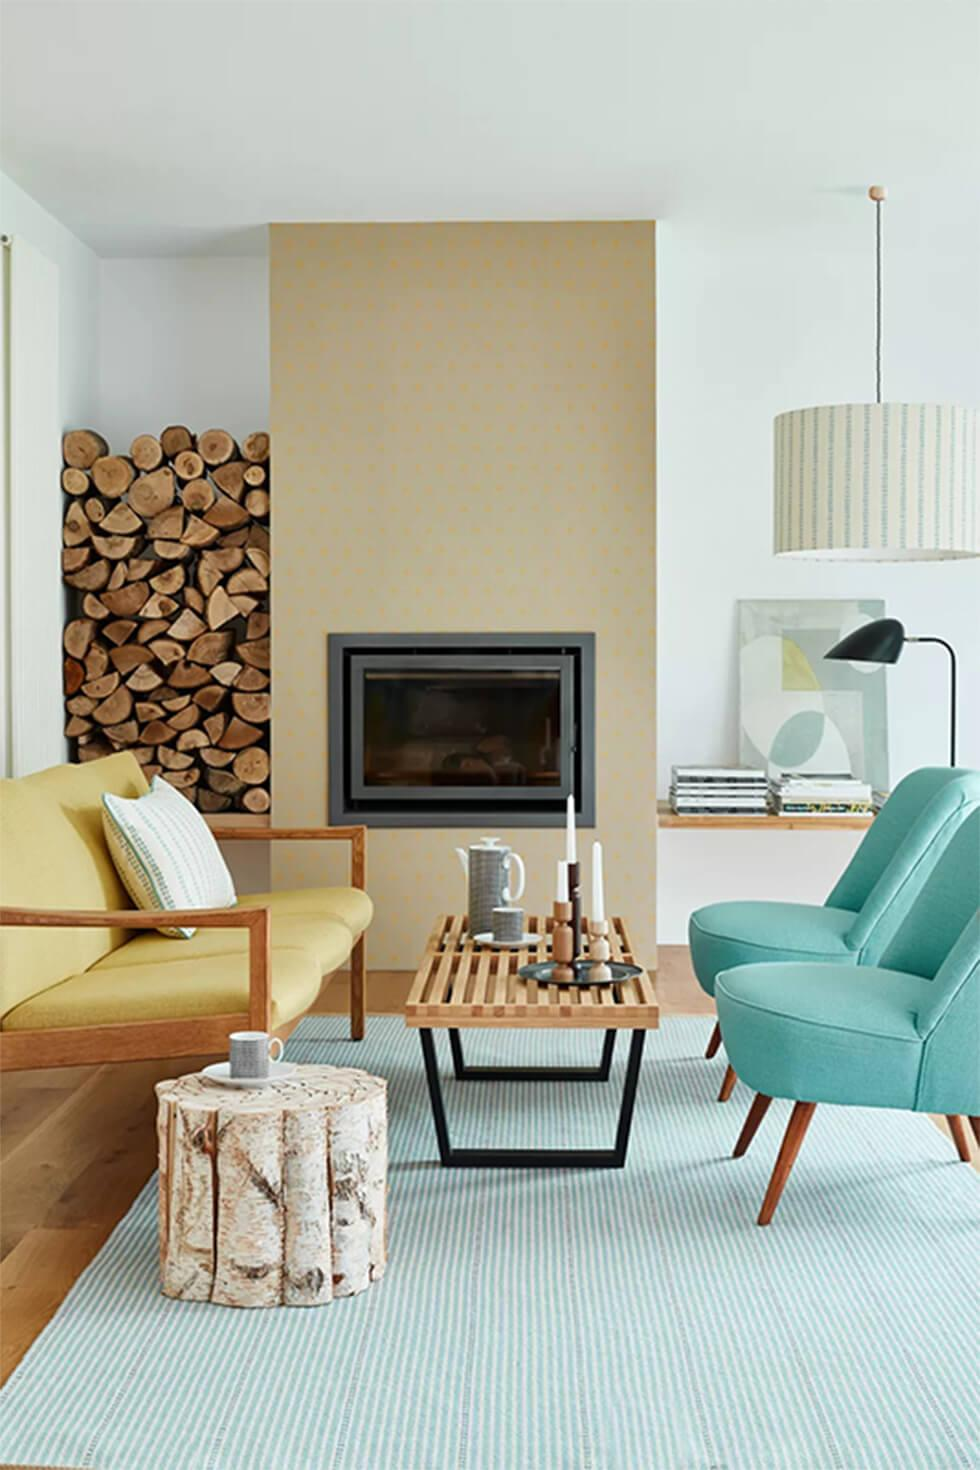 Minimal mid-century living room with yellow sofa and teal armchairs